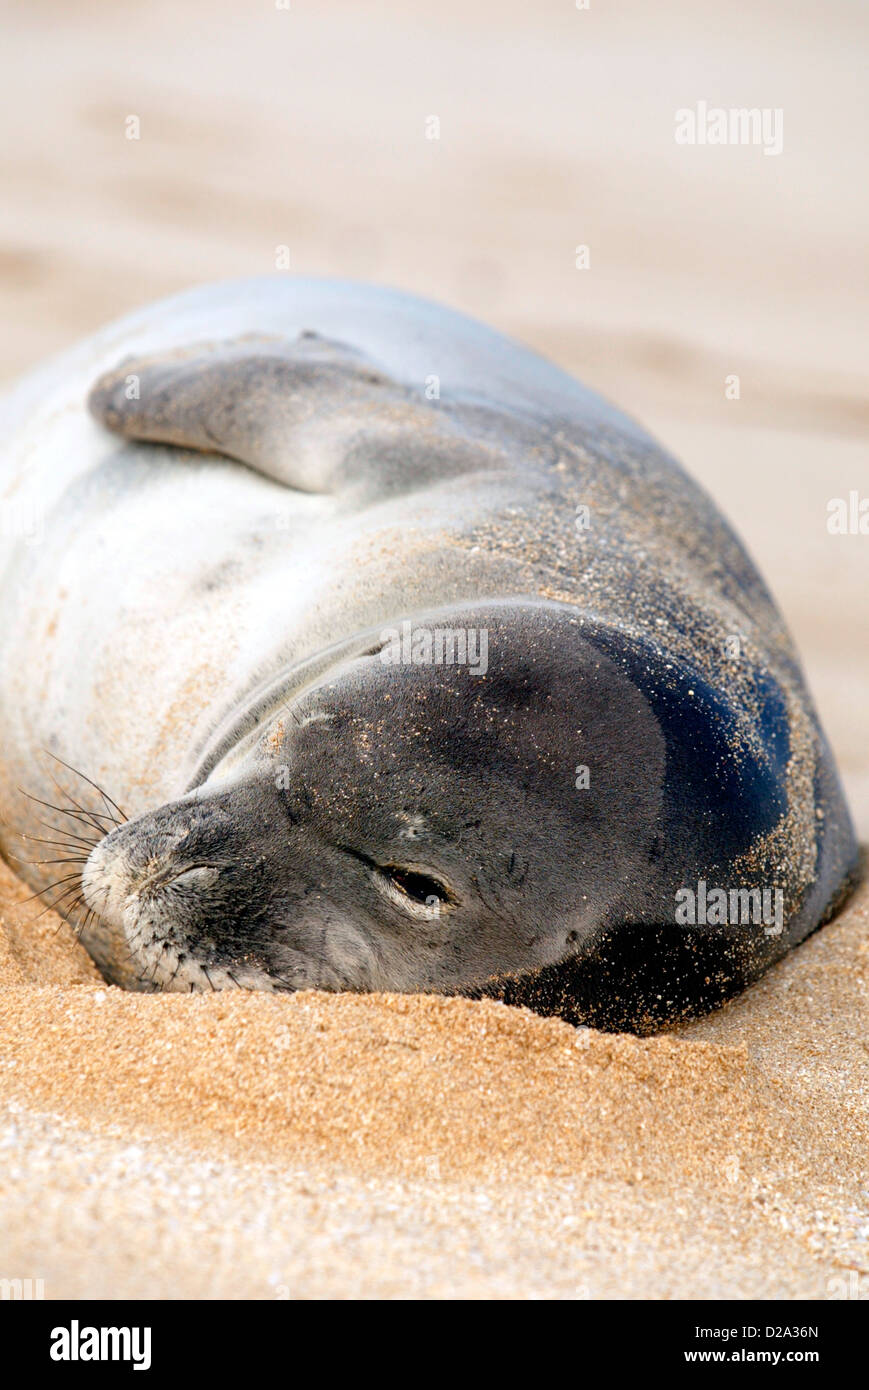 Hawaii, Sunset Beach. Endangered Monk Seal Napping - Stock Image